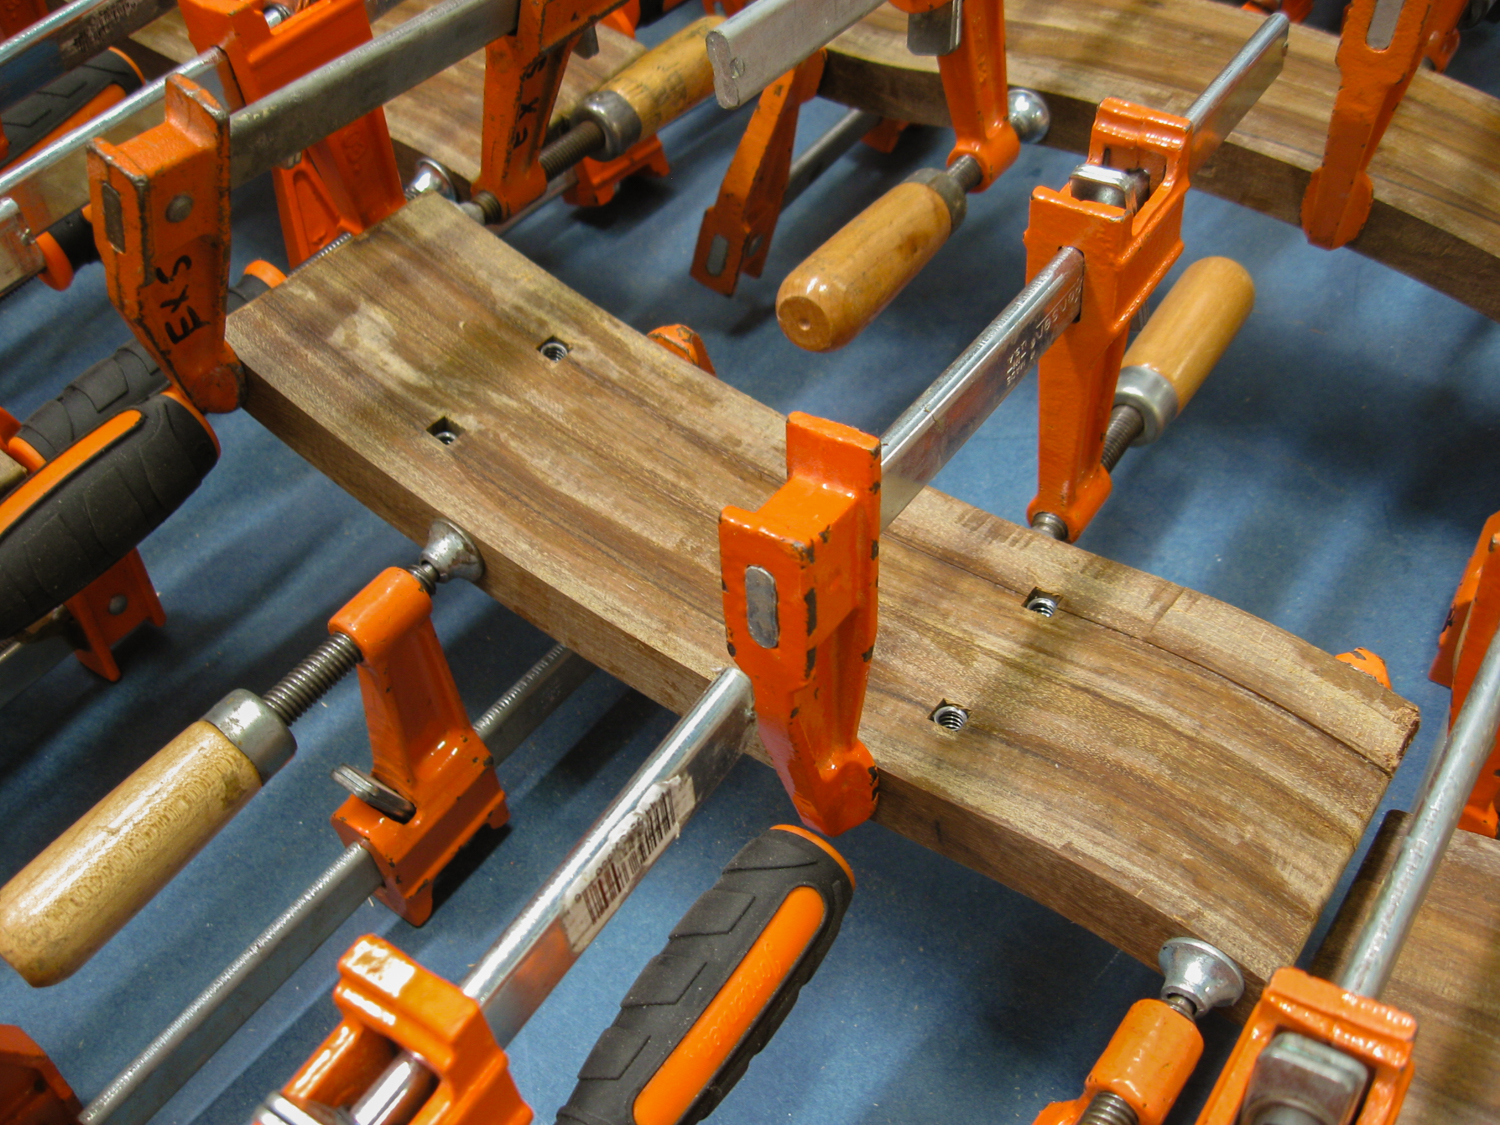 The arm rests were constructed out of four CNC routed pieces, with slots to hold captured fastening nuts